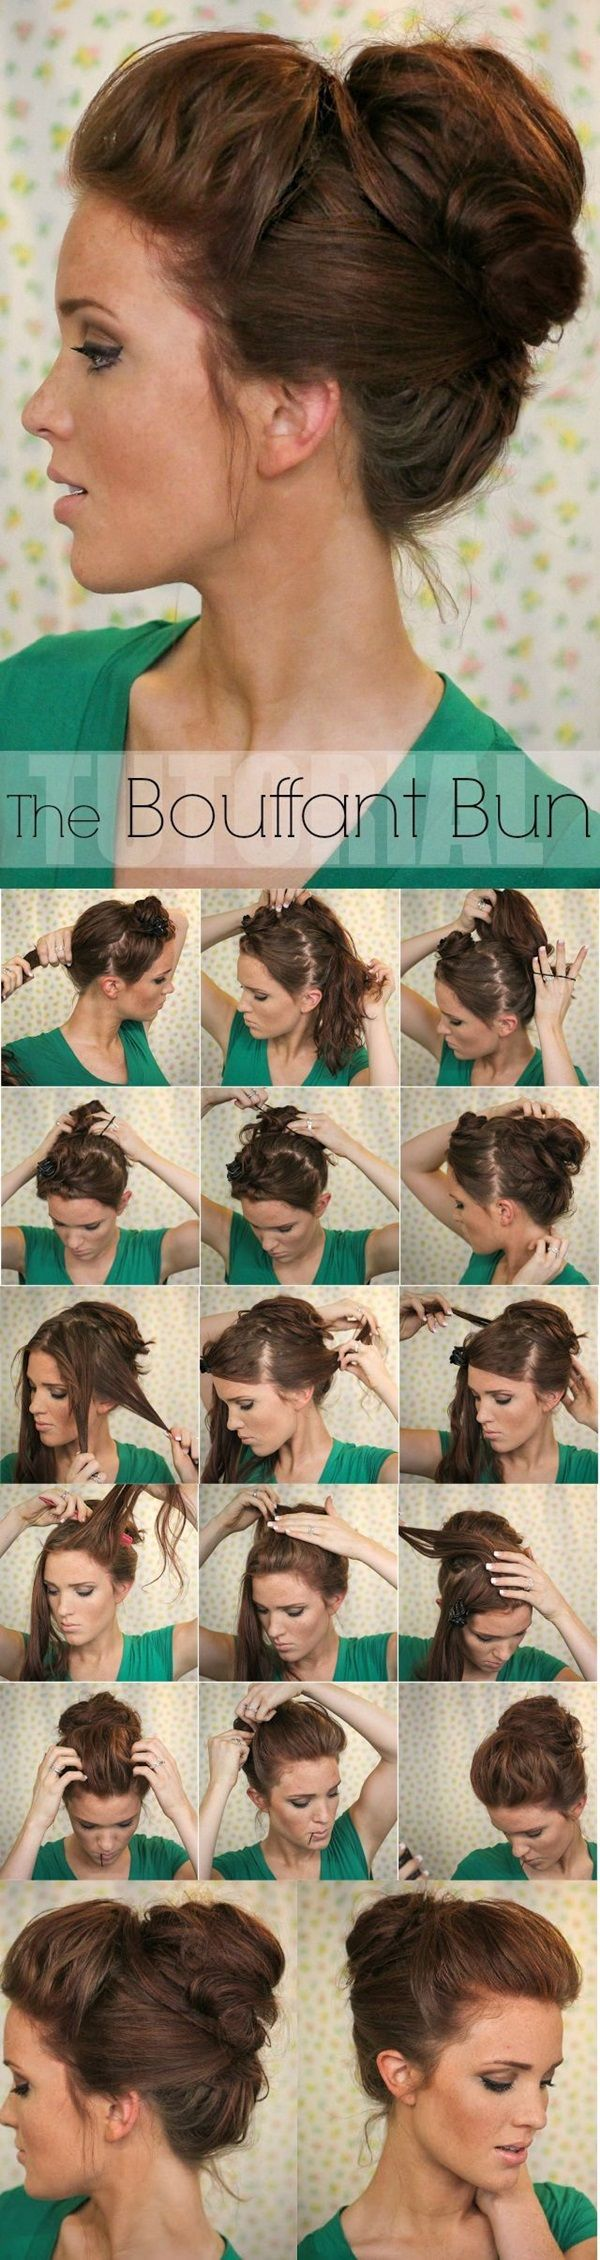 Quick Hairstyle Tutorials For Office Women : Inflation is when you pay fifteen dollars for the ten-dollar haircut you used to get for five dollars when you had hair.